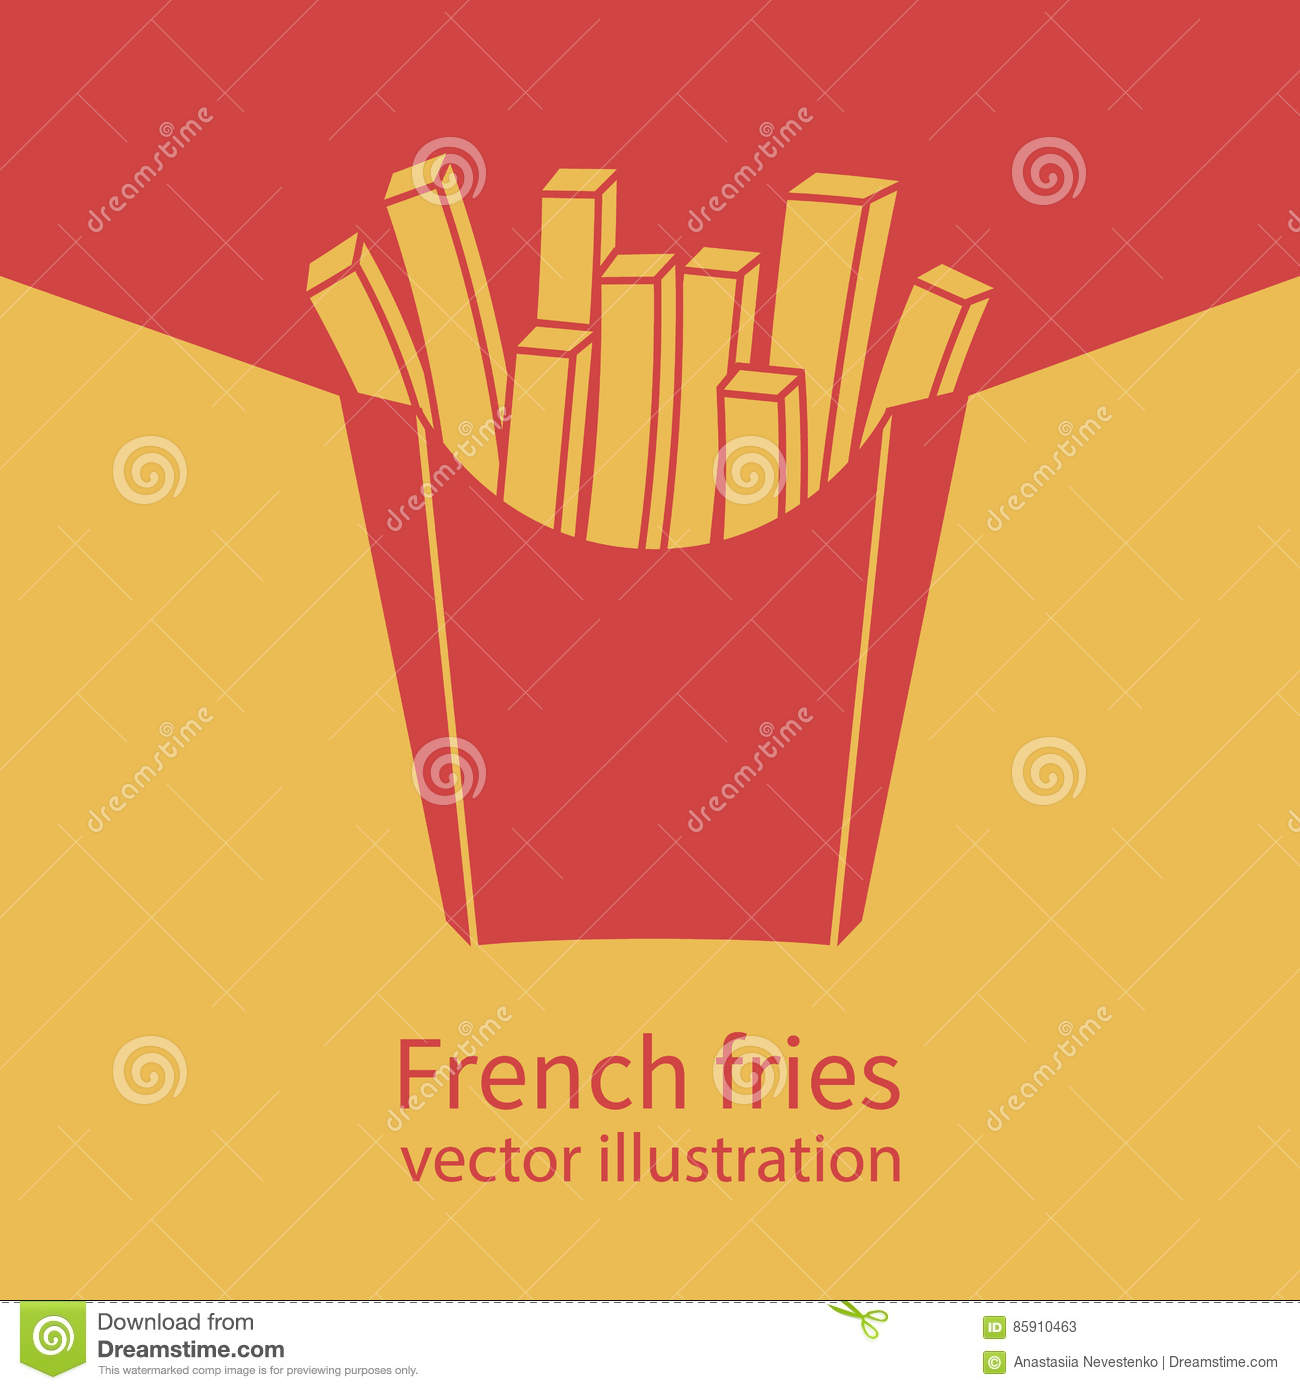 French Fries In Paper Red Box IconVector Illustration Flat Design Fast Food Icon Template Banner For Advertising Promotion Space Text